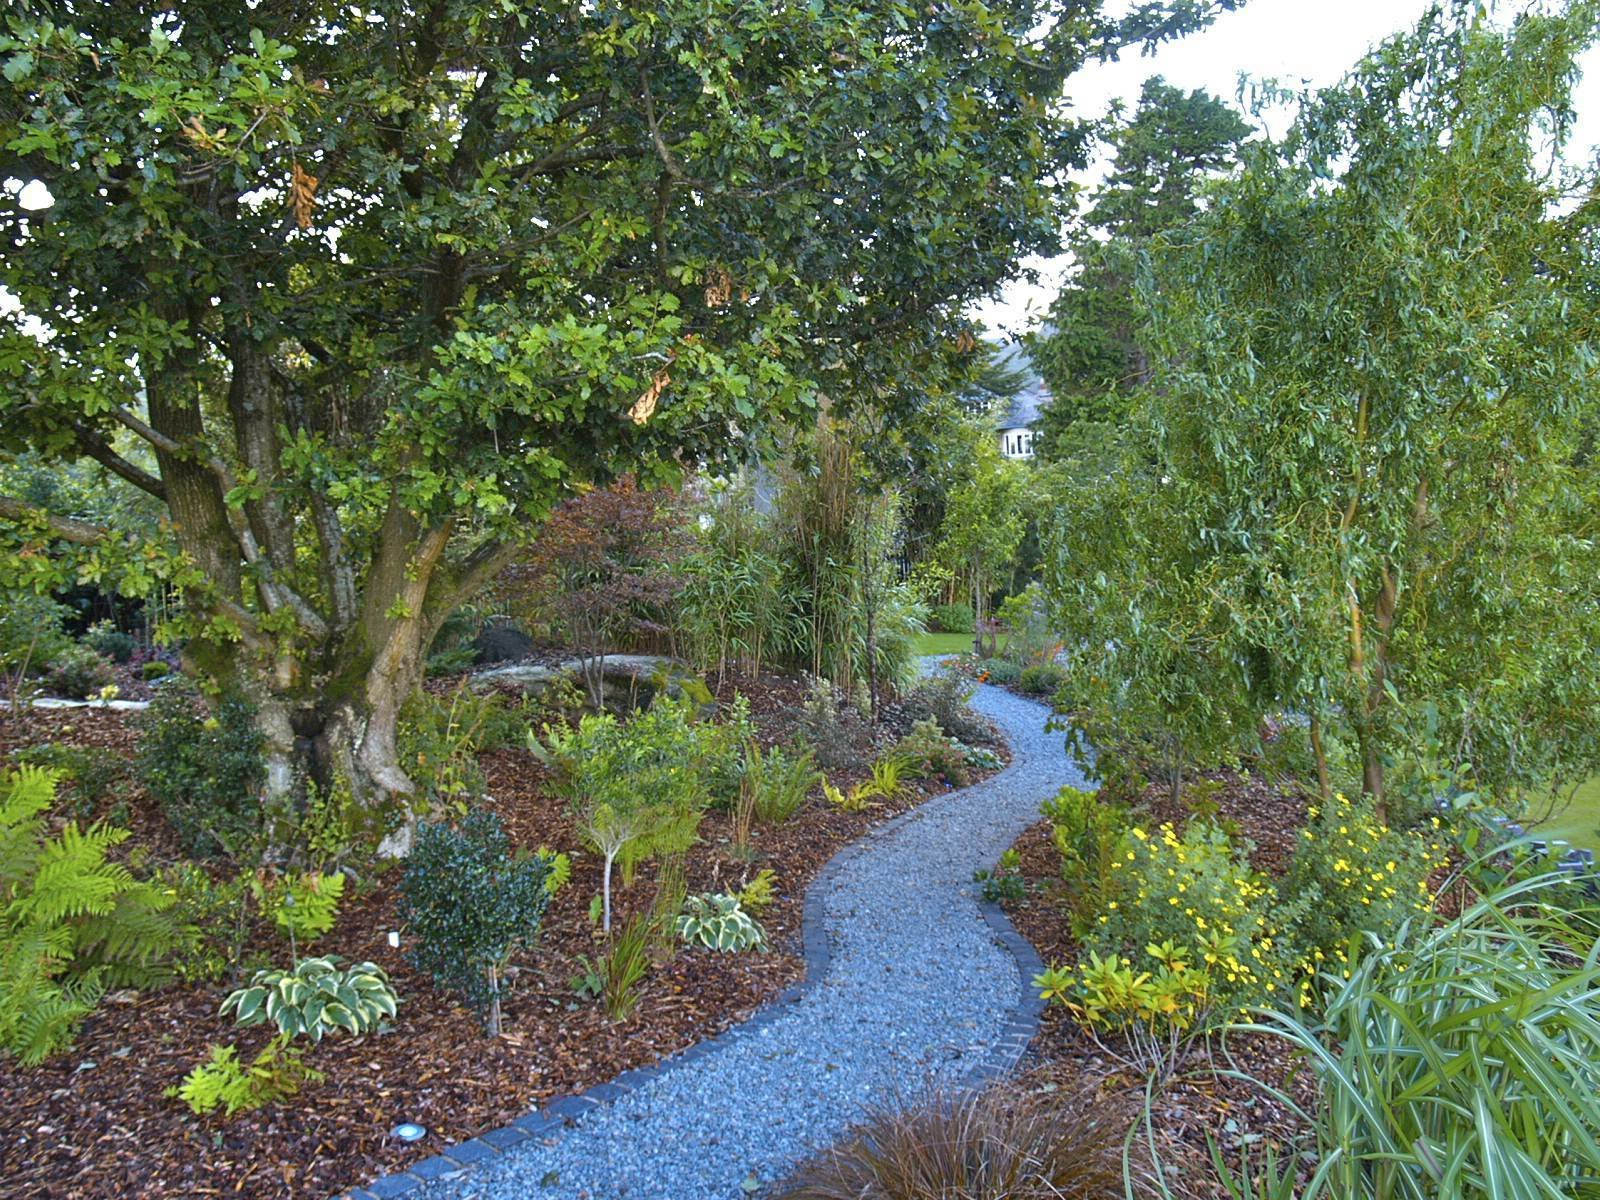 An existing Welsh oak was retained and pruned.  The rocky area was redefined with shade-loving perennials, Japanese maples and a winding, granite sett-edged granite path.  Clifftop garden North Wales by Scott Fairley